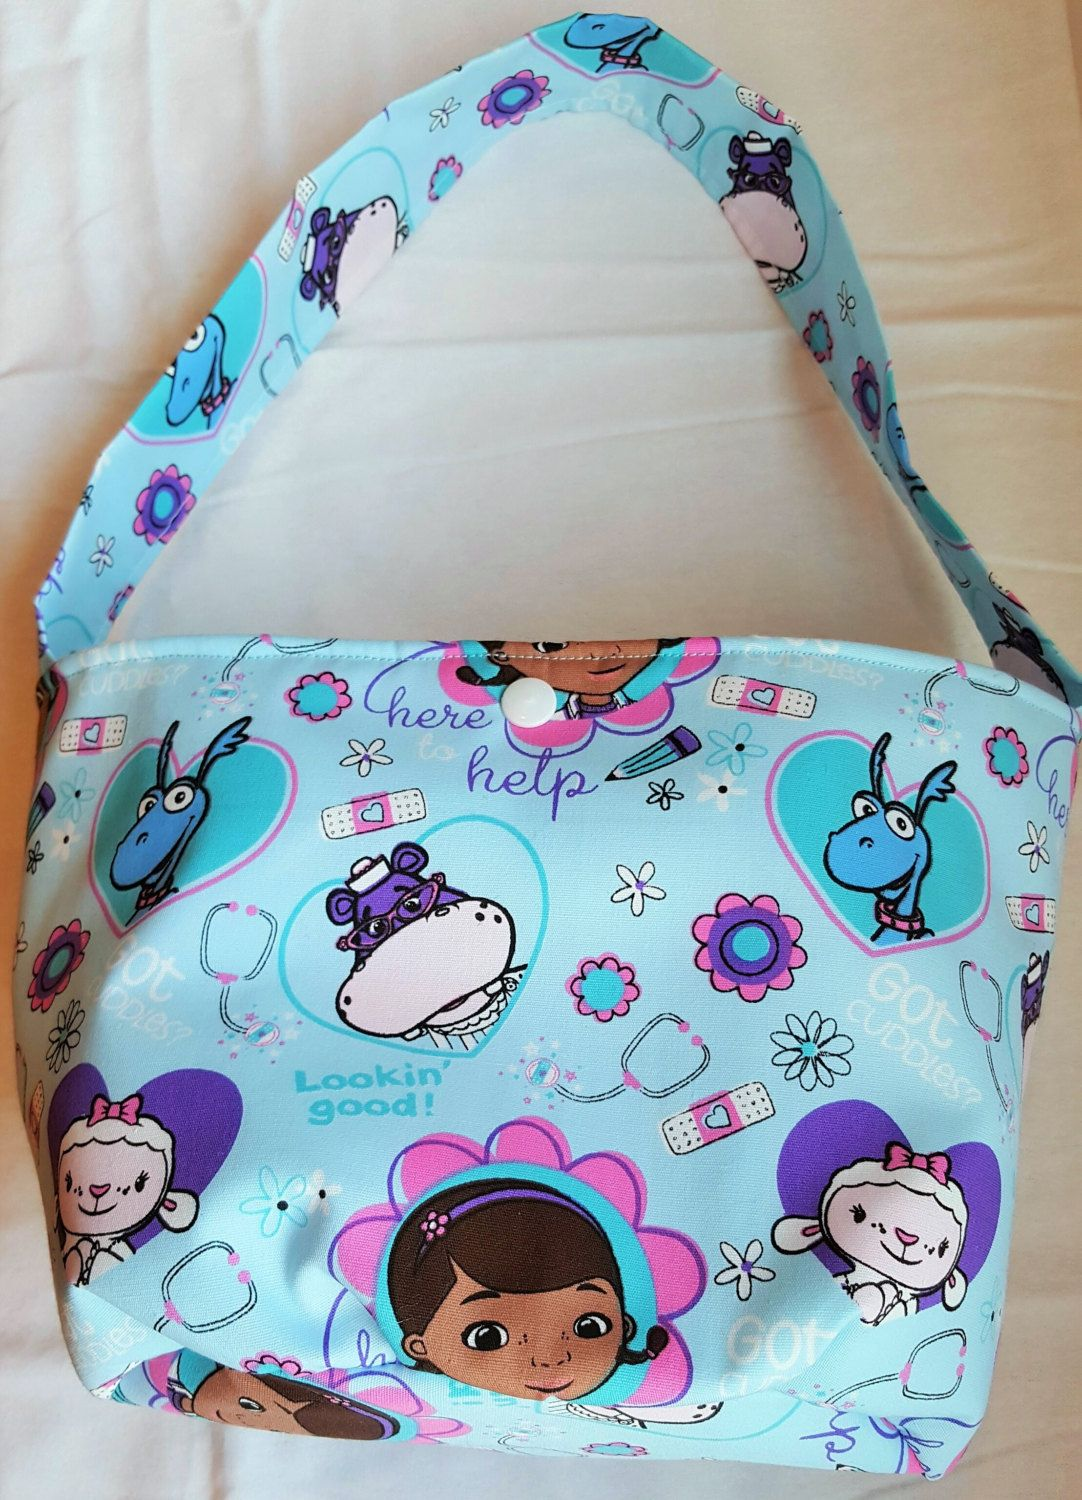 Doc McStuffins themed Girl's Bucket purse with matching accessories by SherrysCraftPatch on Etsy